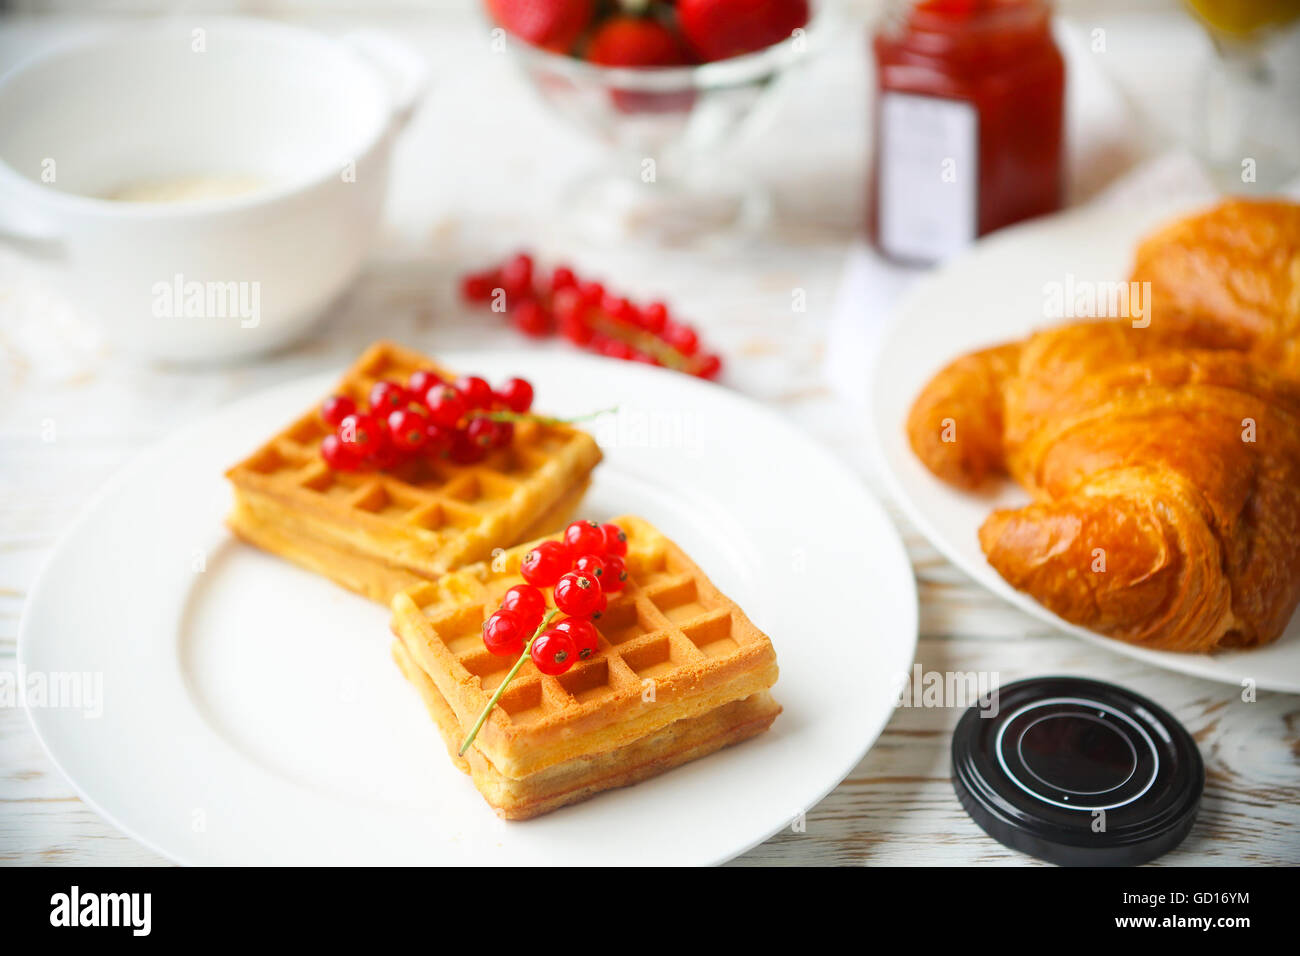 Waffles with red currant jam and berries on a white plate, croissants, orange juice and oat flakes oatmeal on the Stock Photo